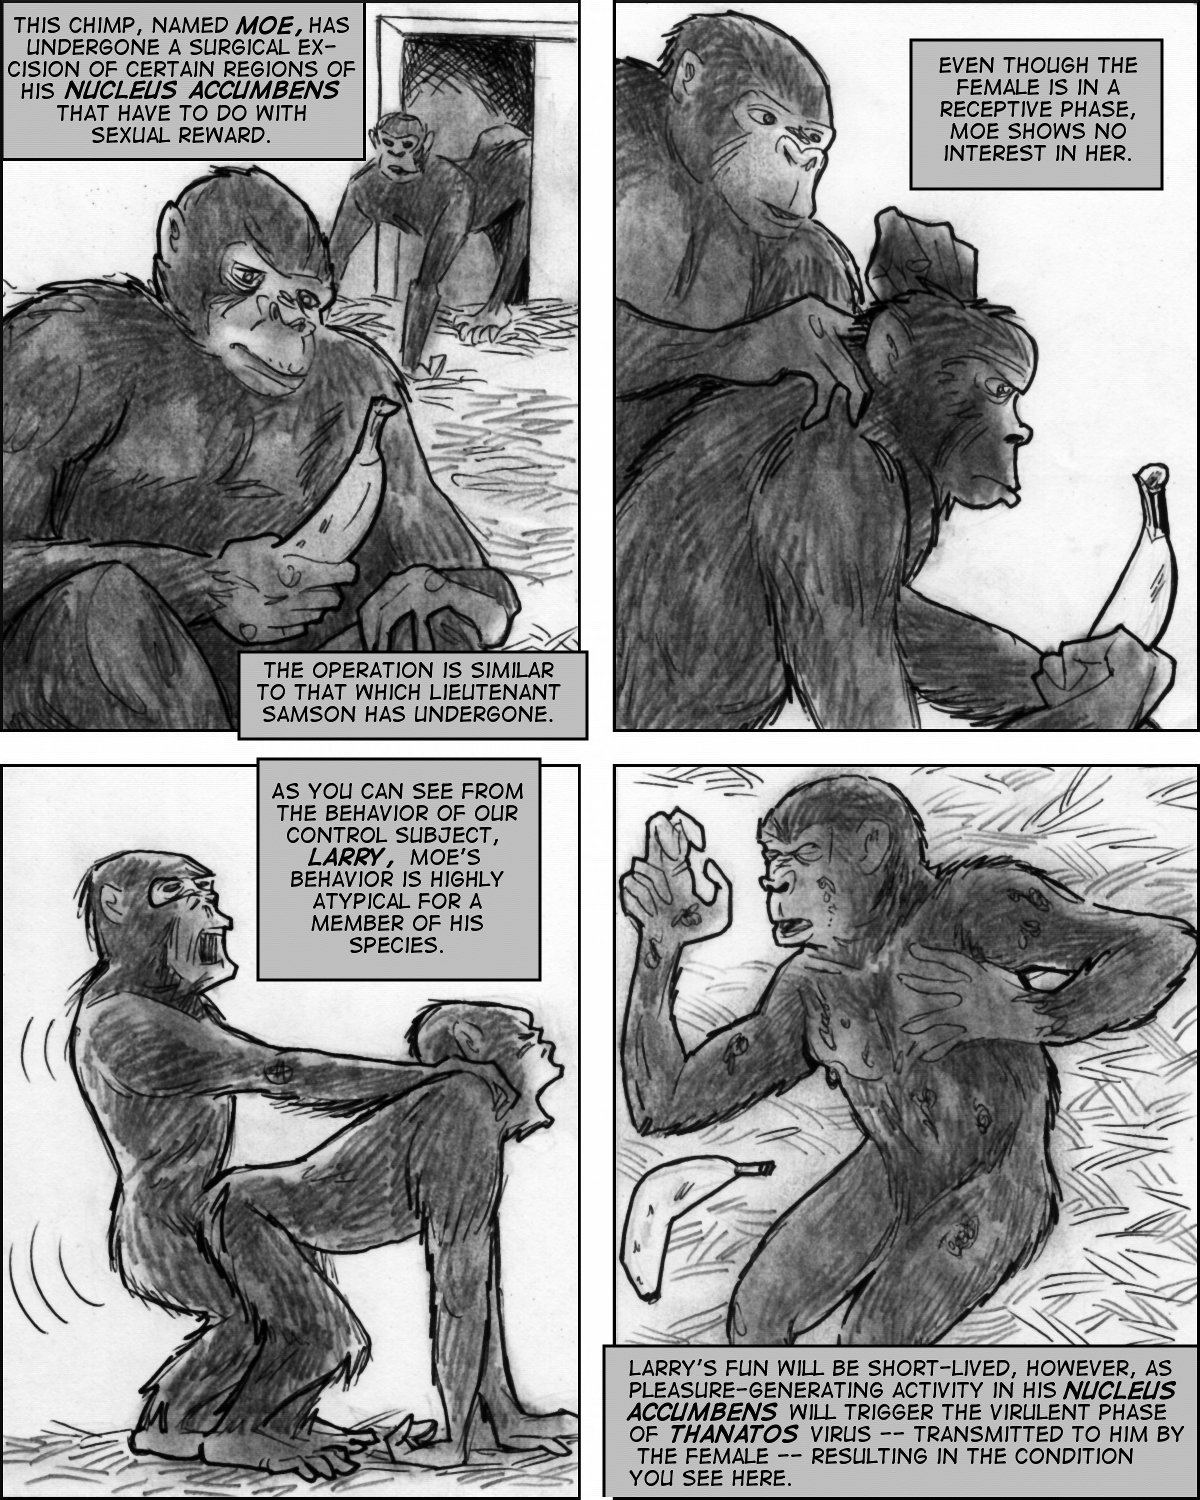 Effects of a mad science biowarfare program on chimps are revealed.